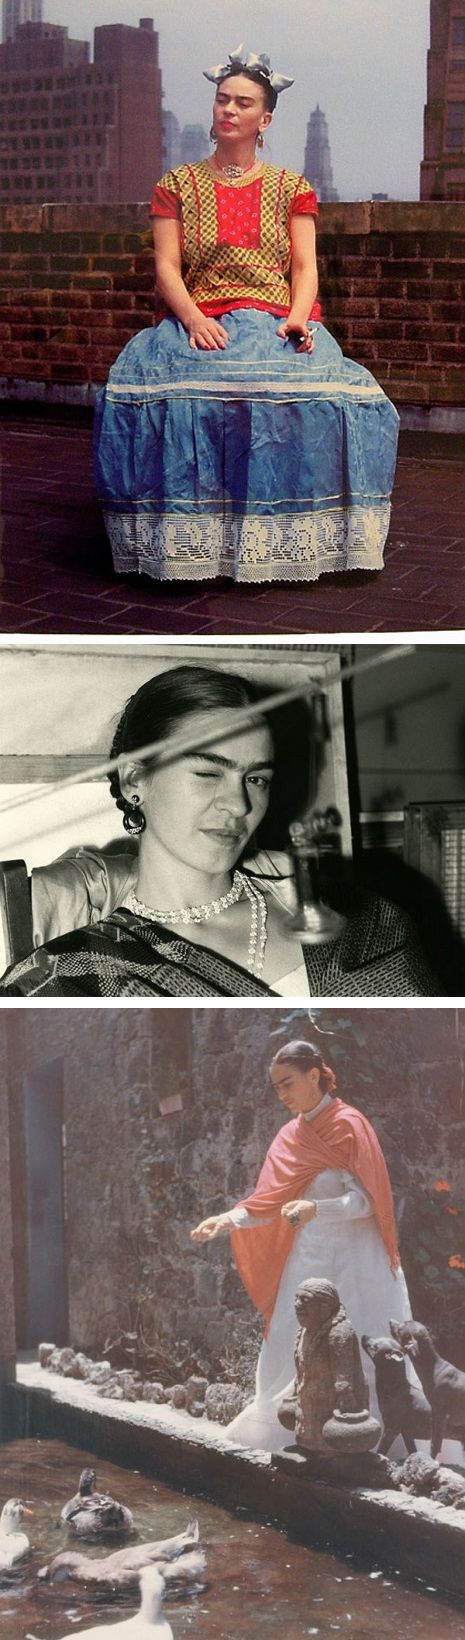 Check out this rare intimate collection of photographs featuring Frida Kahlo in love, in pain, and with her pets.